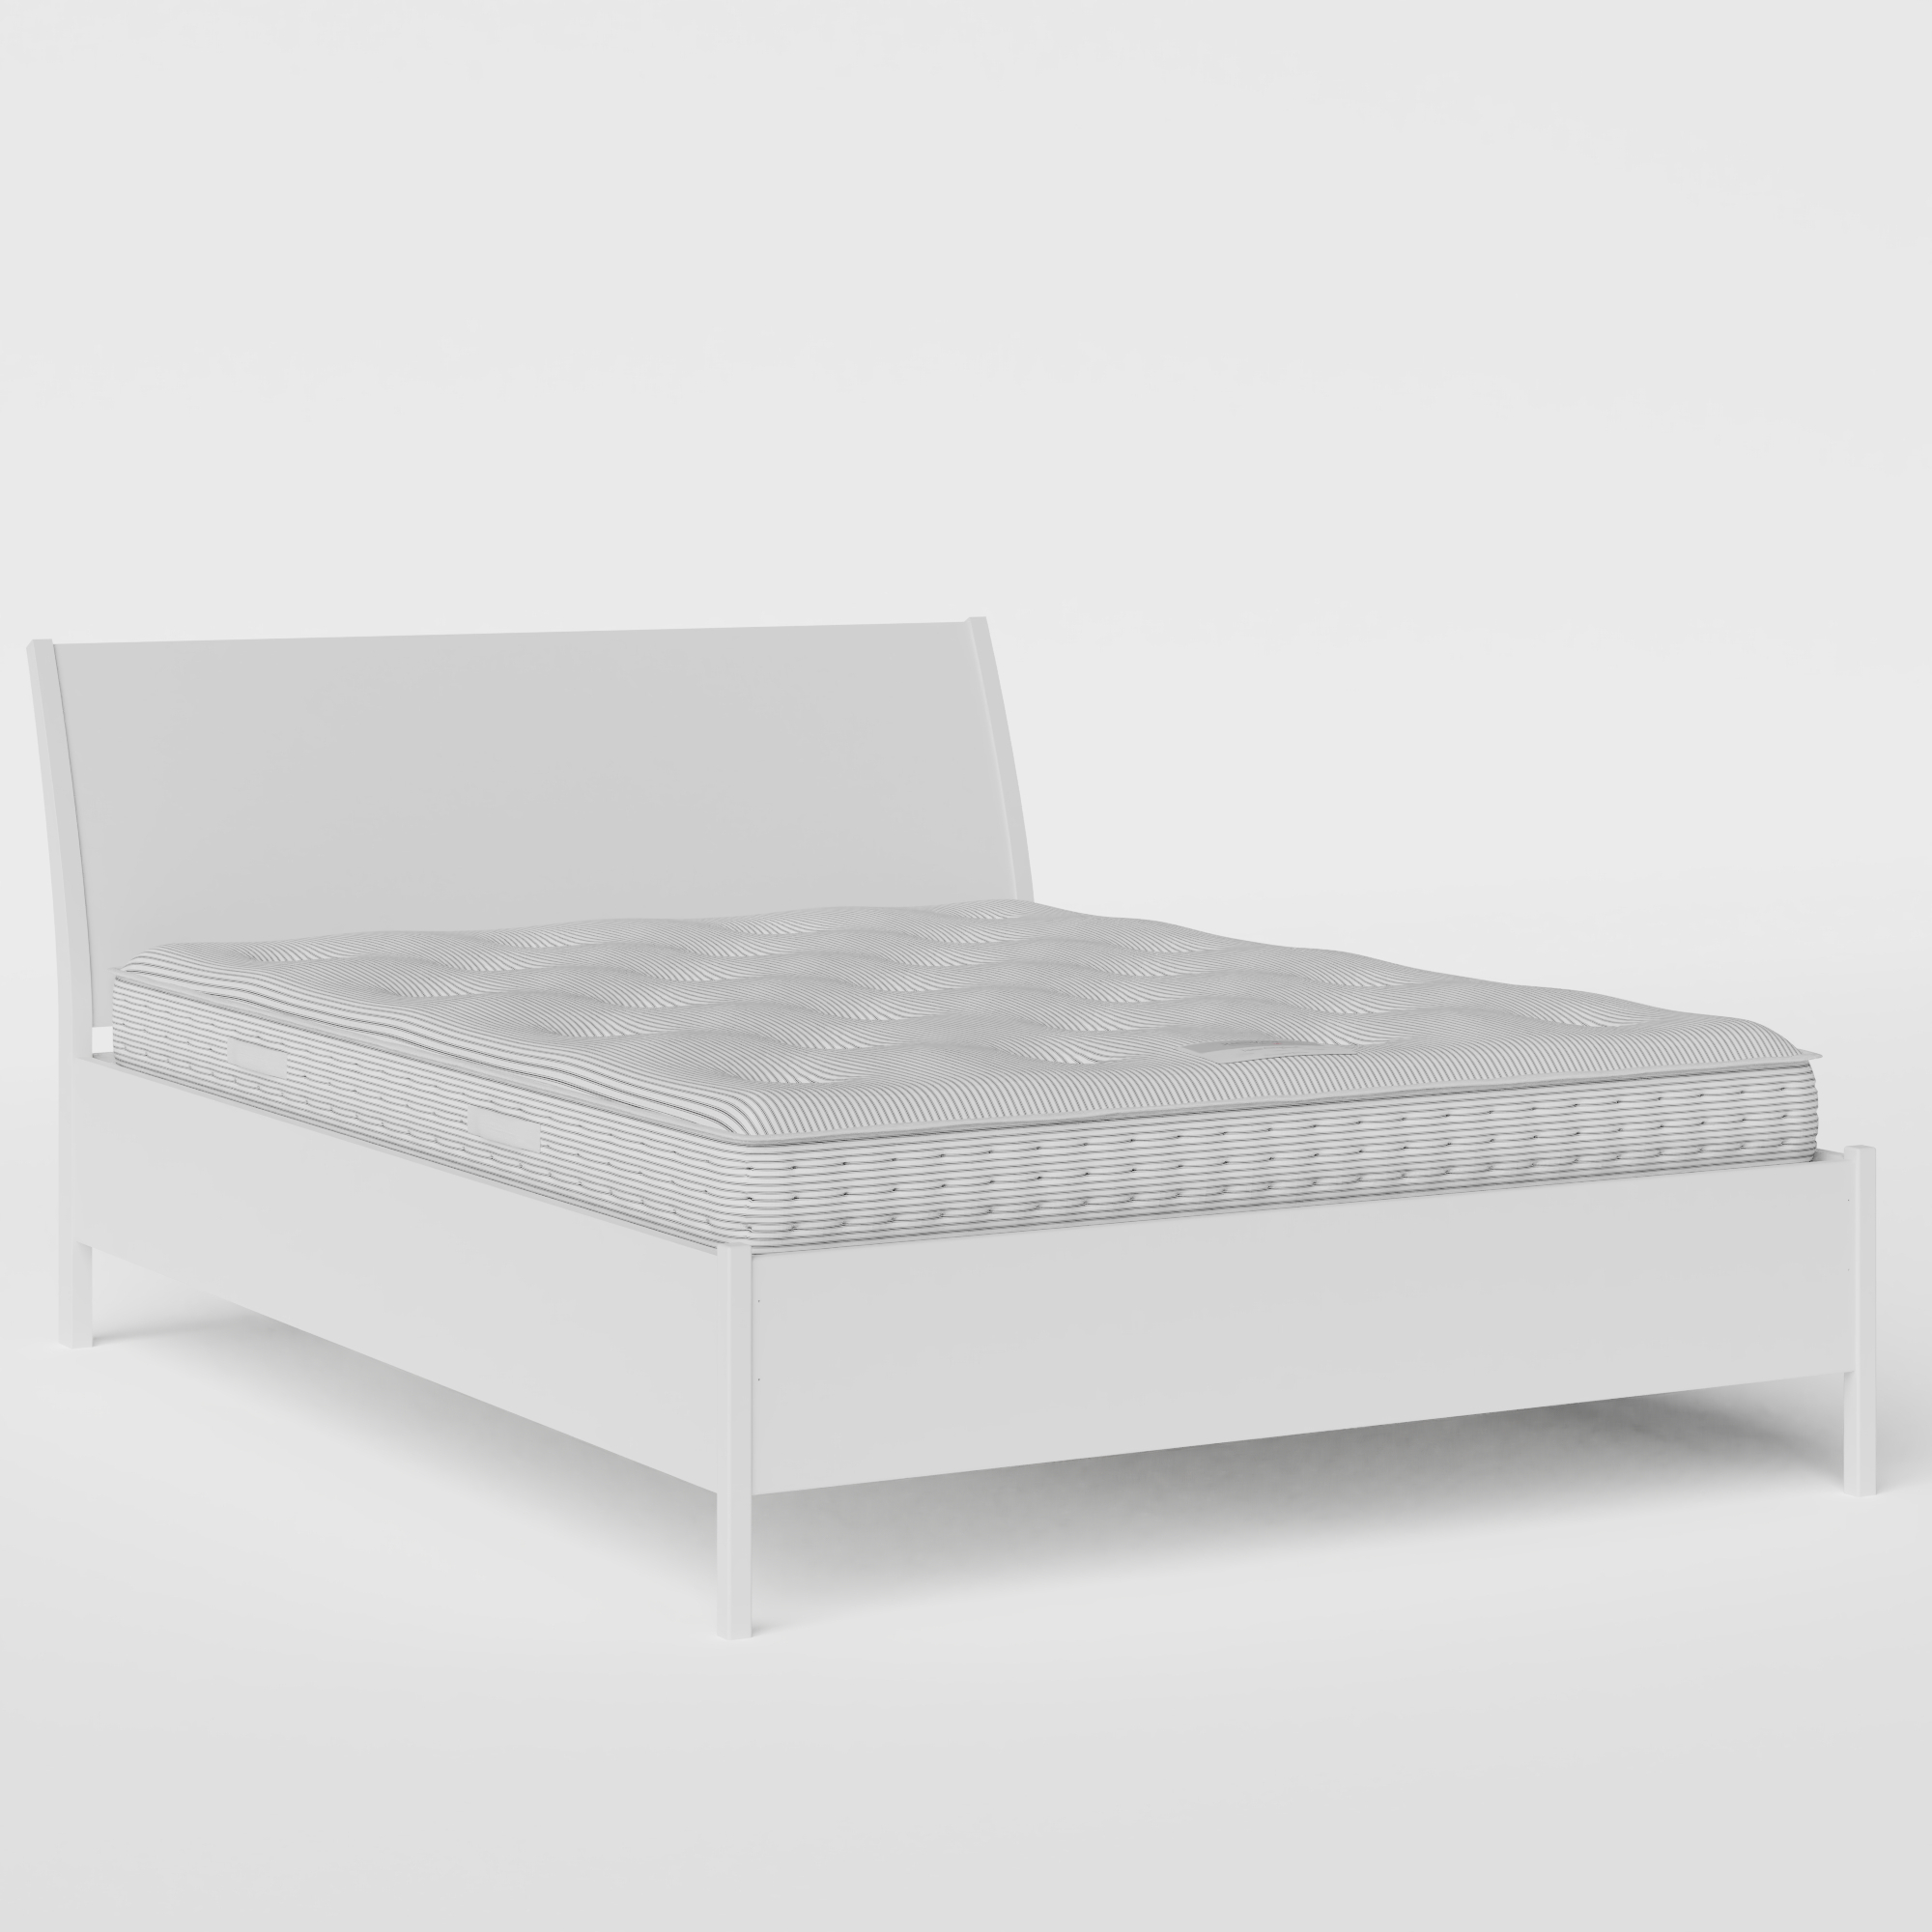 Hunt Painted painted wood bed in white with Juno mattress